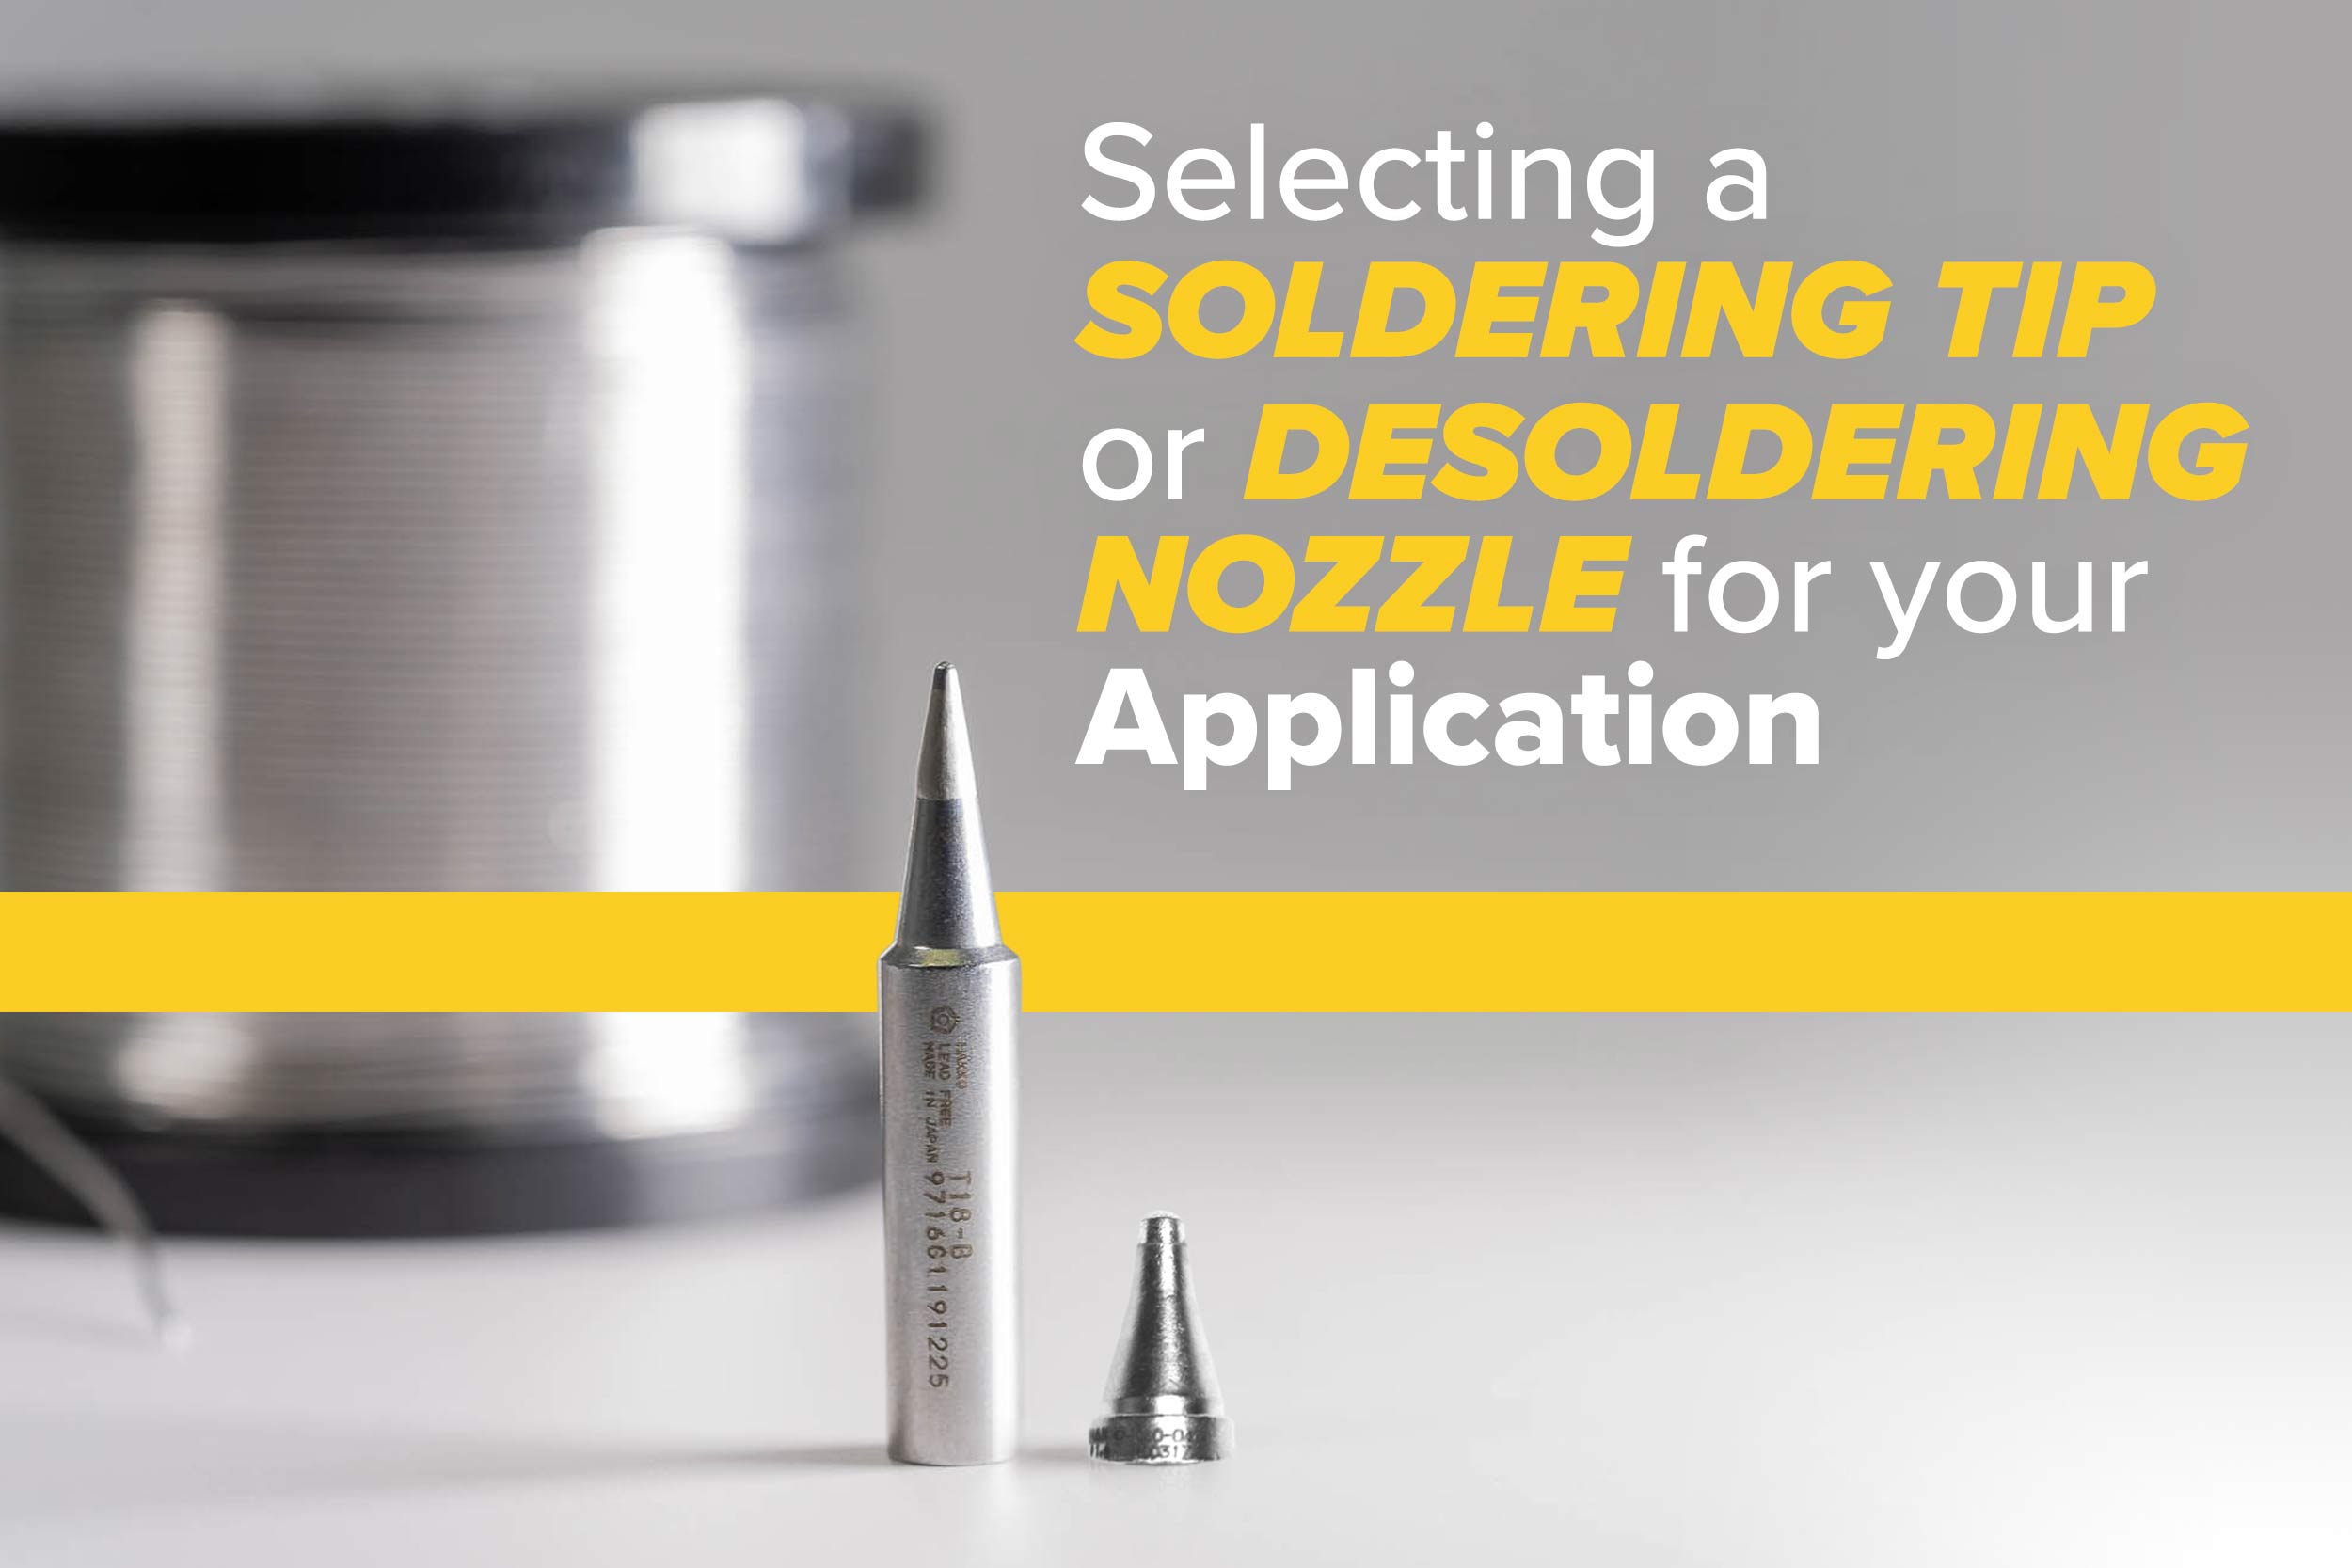 Selecting a Soldering Tip or Desoldering Nozzle for your Application